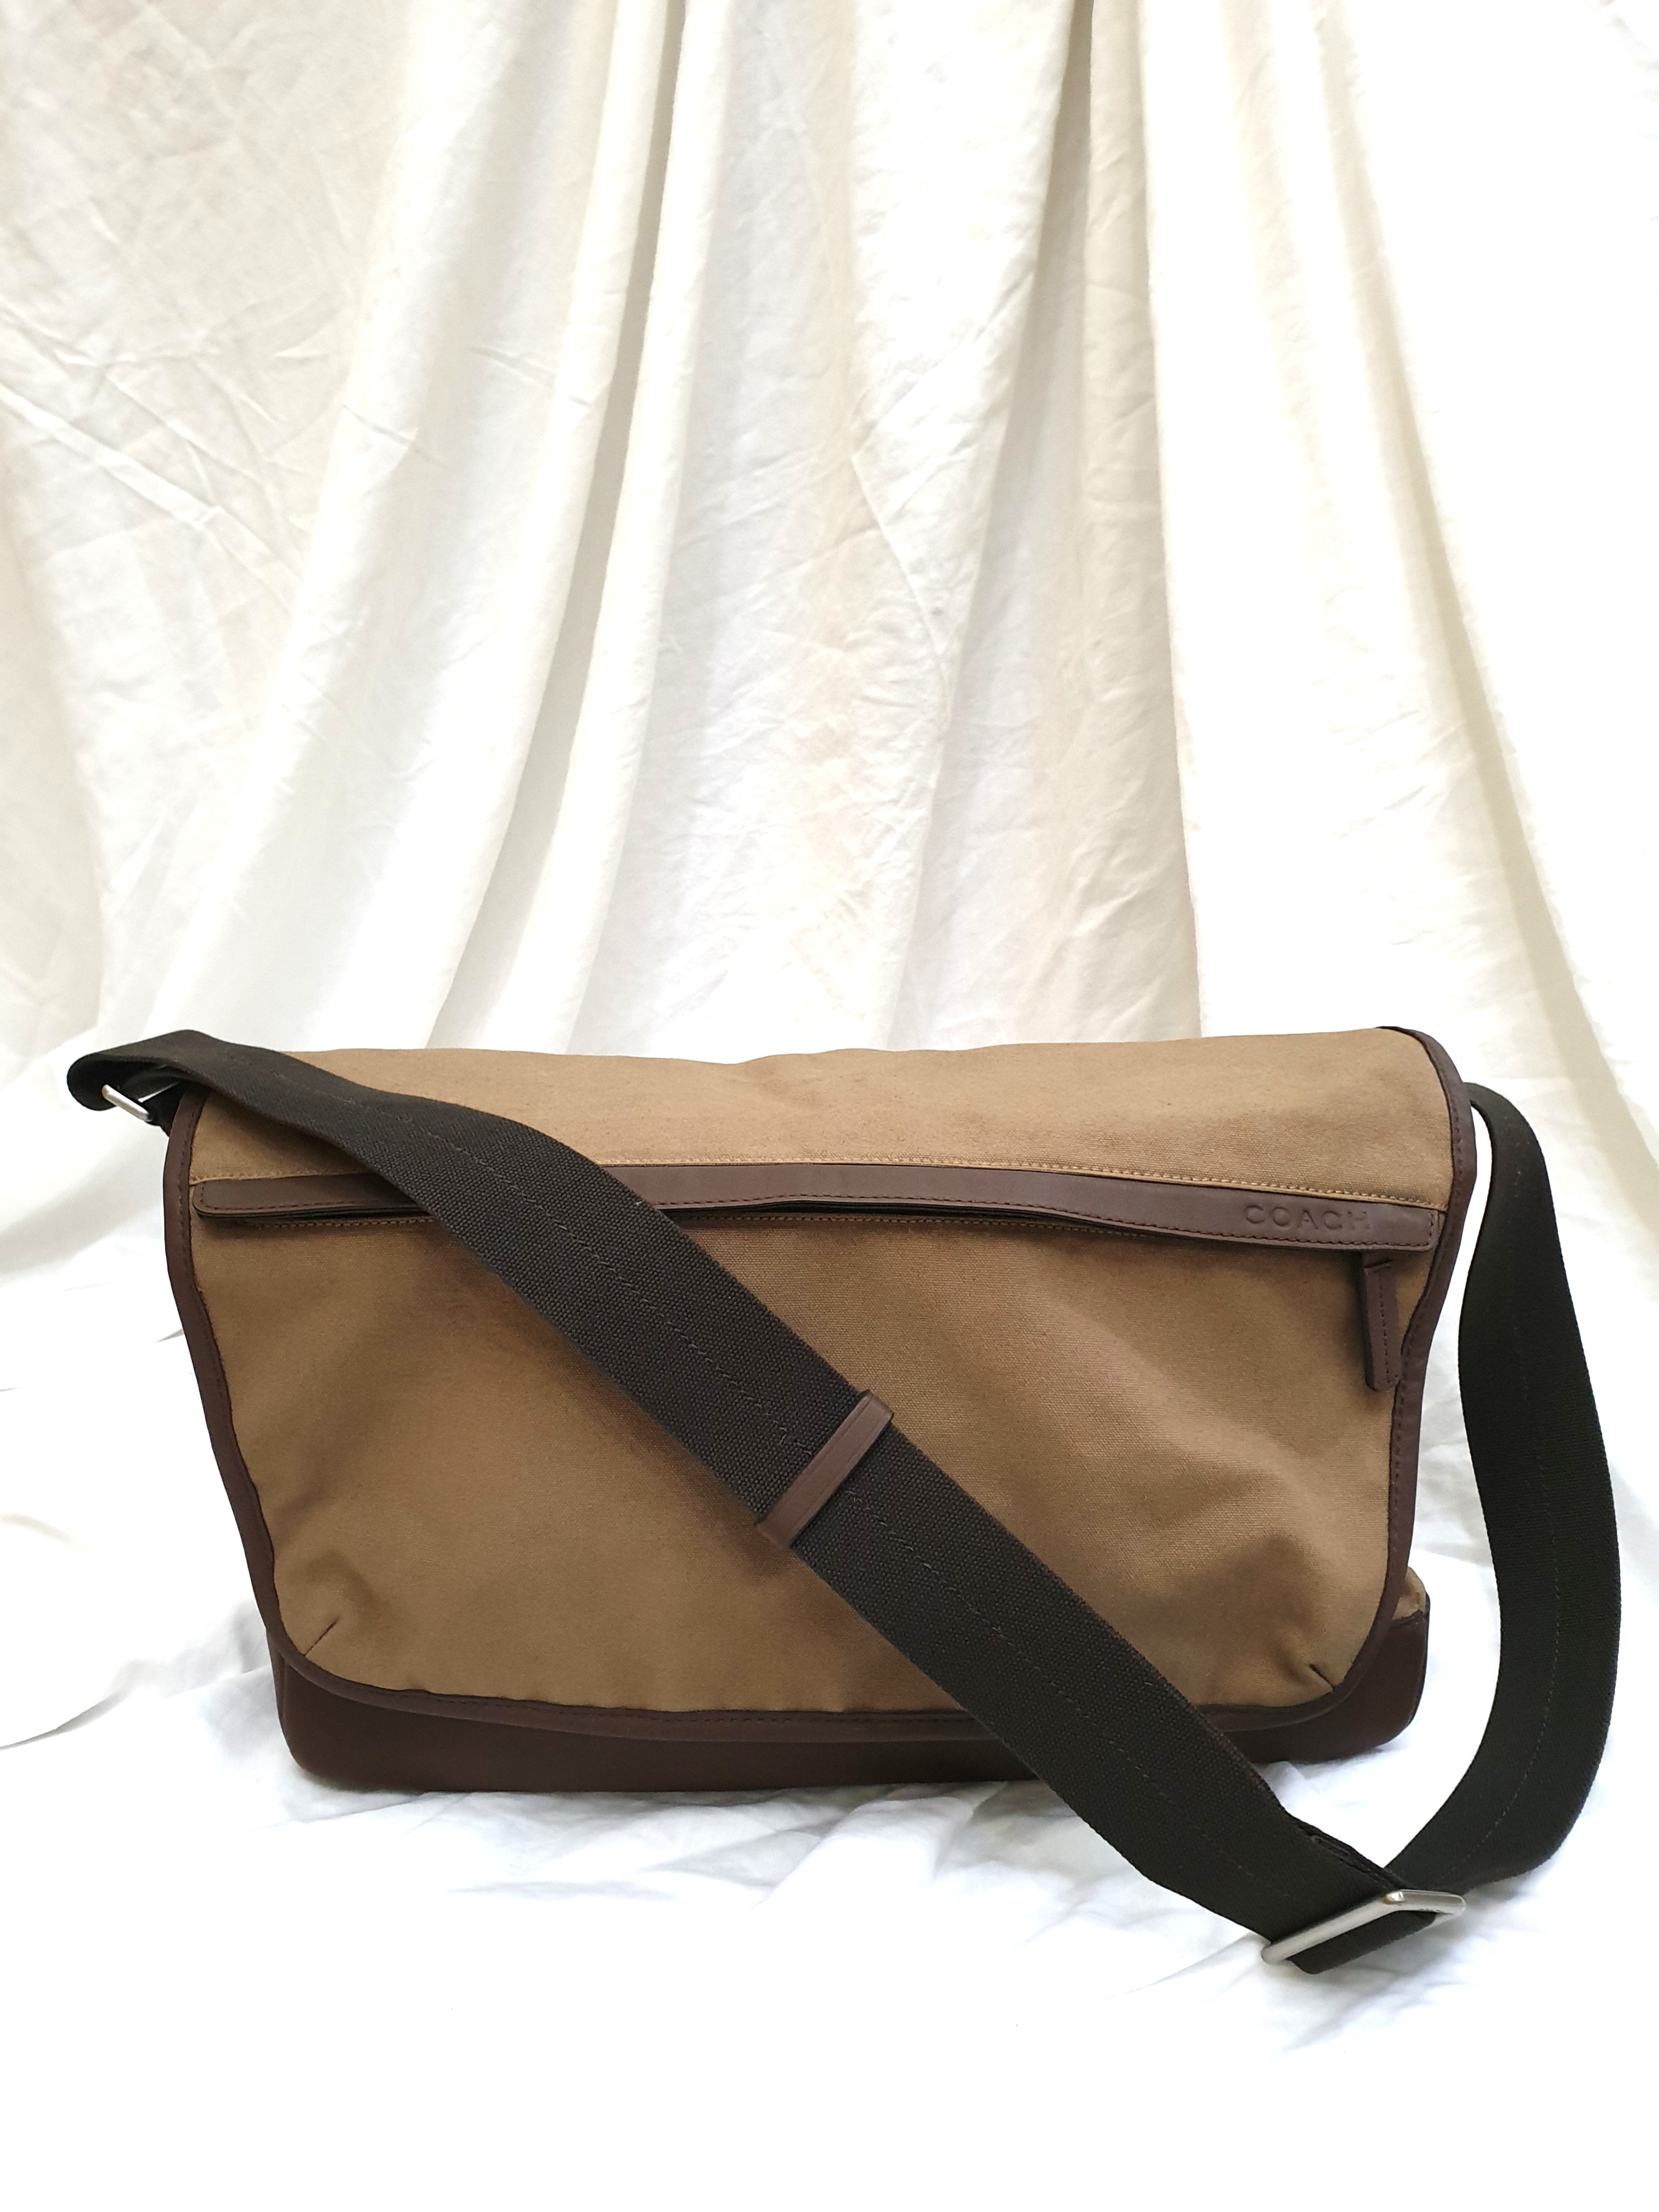 128125f9ca9 Price reduced  Authentic Coach Canvas Messenger Bag, Luxury, Bags ...